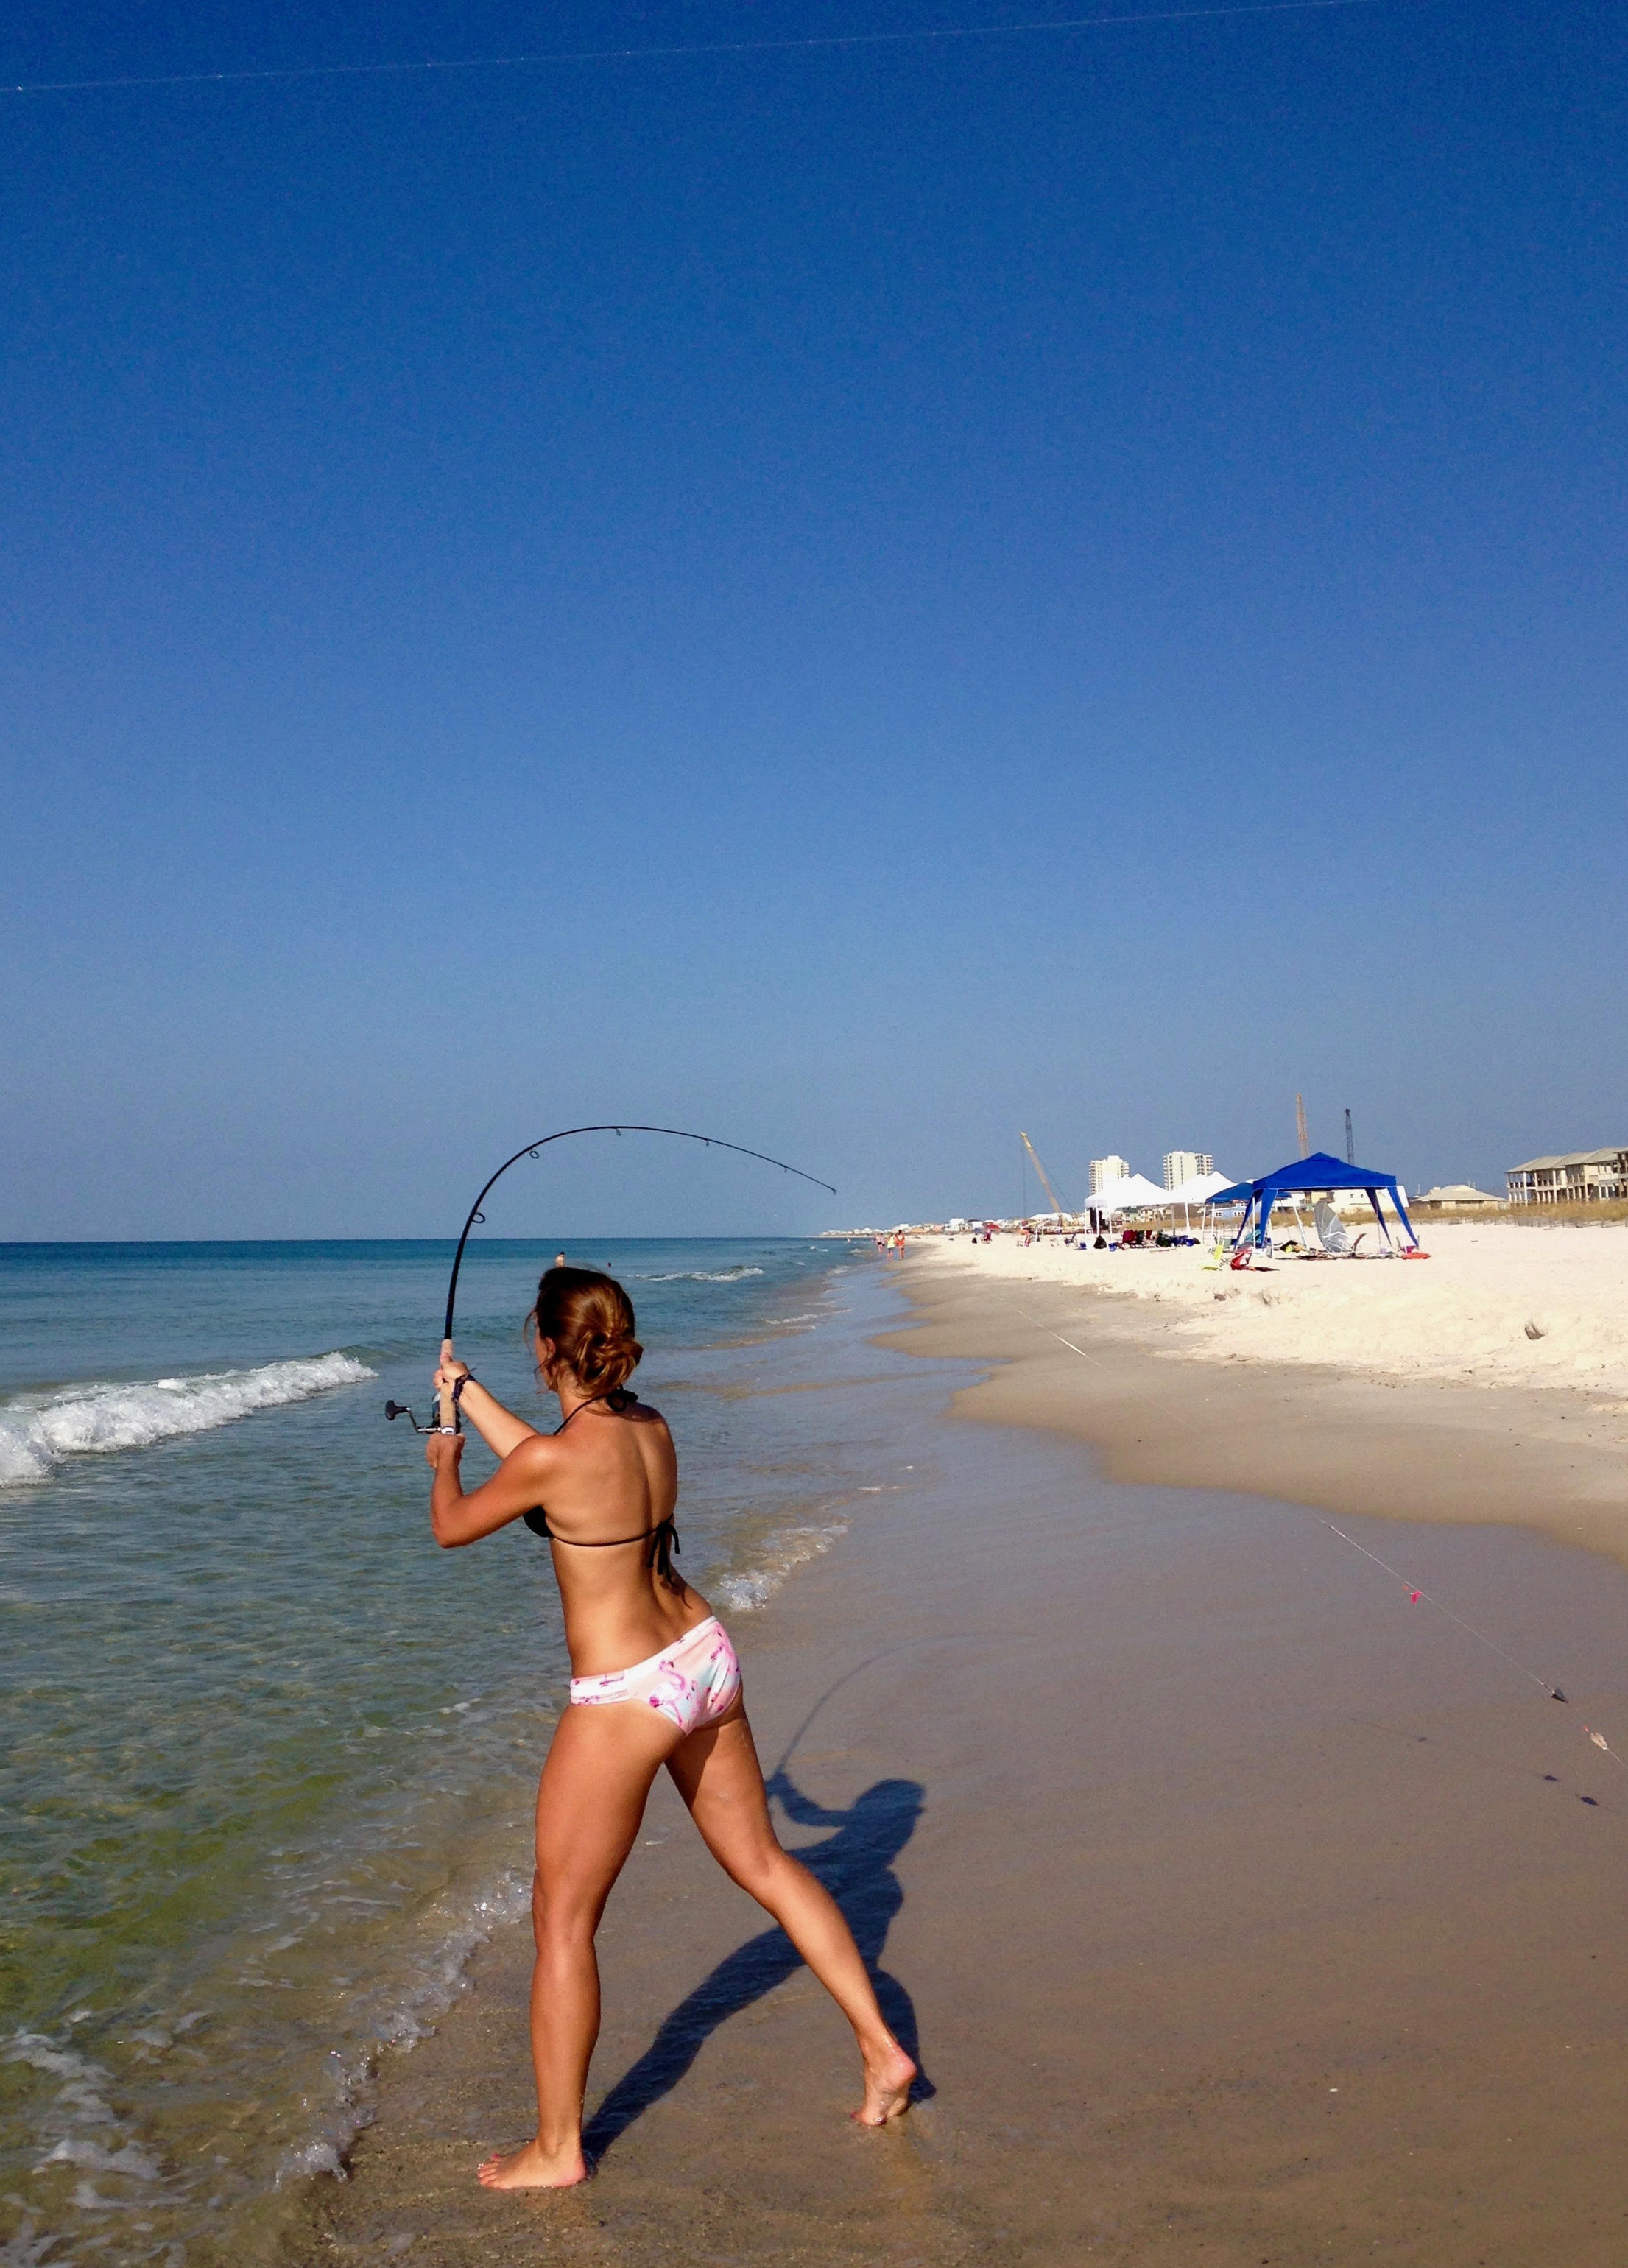 Fishing off the surf